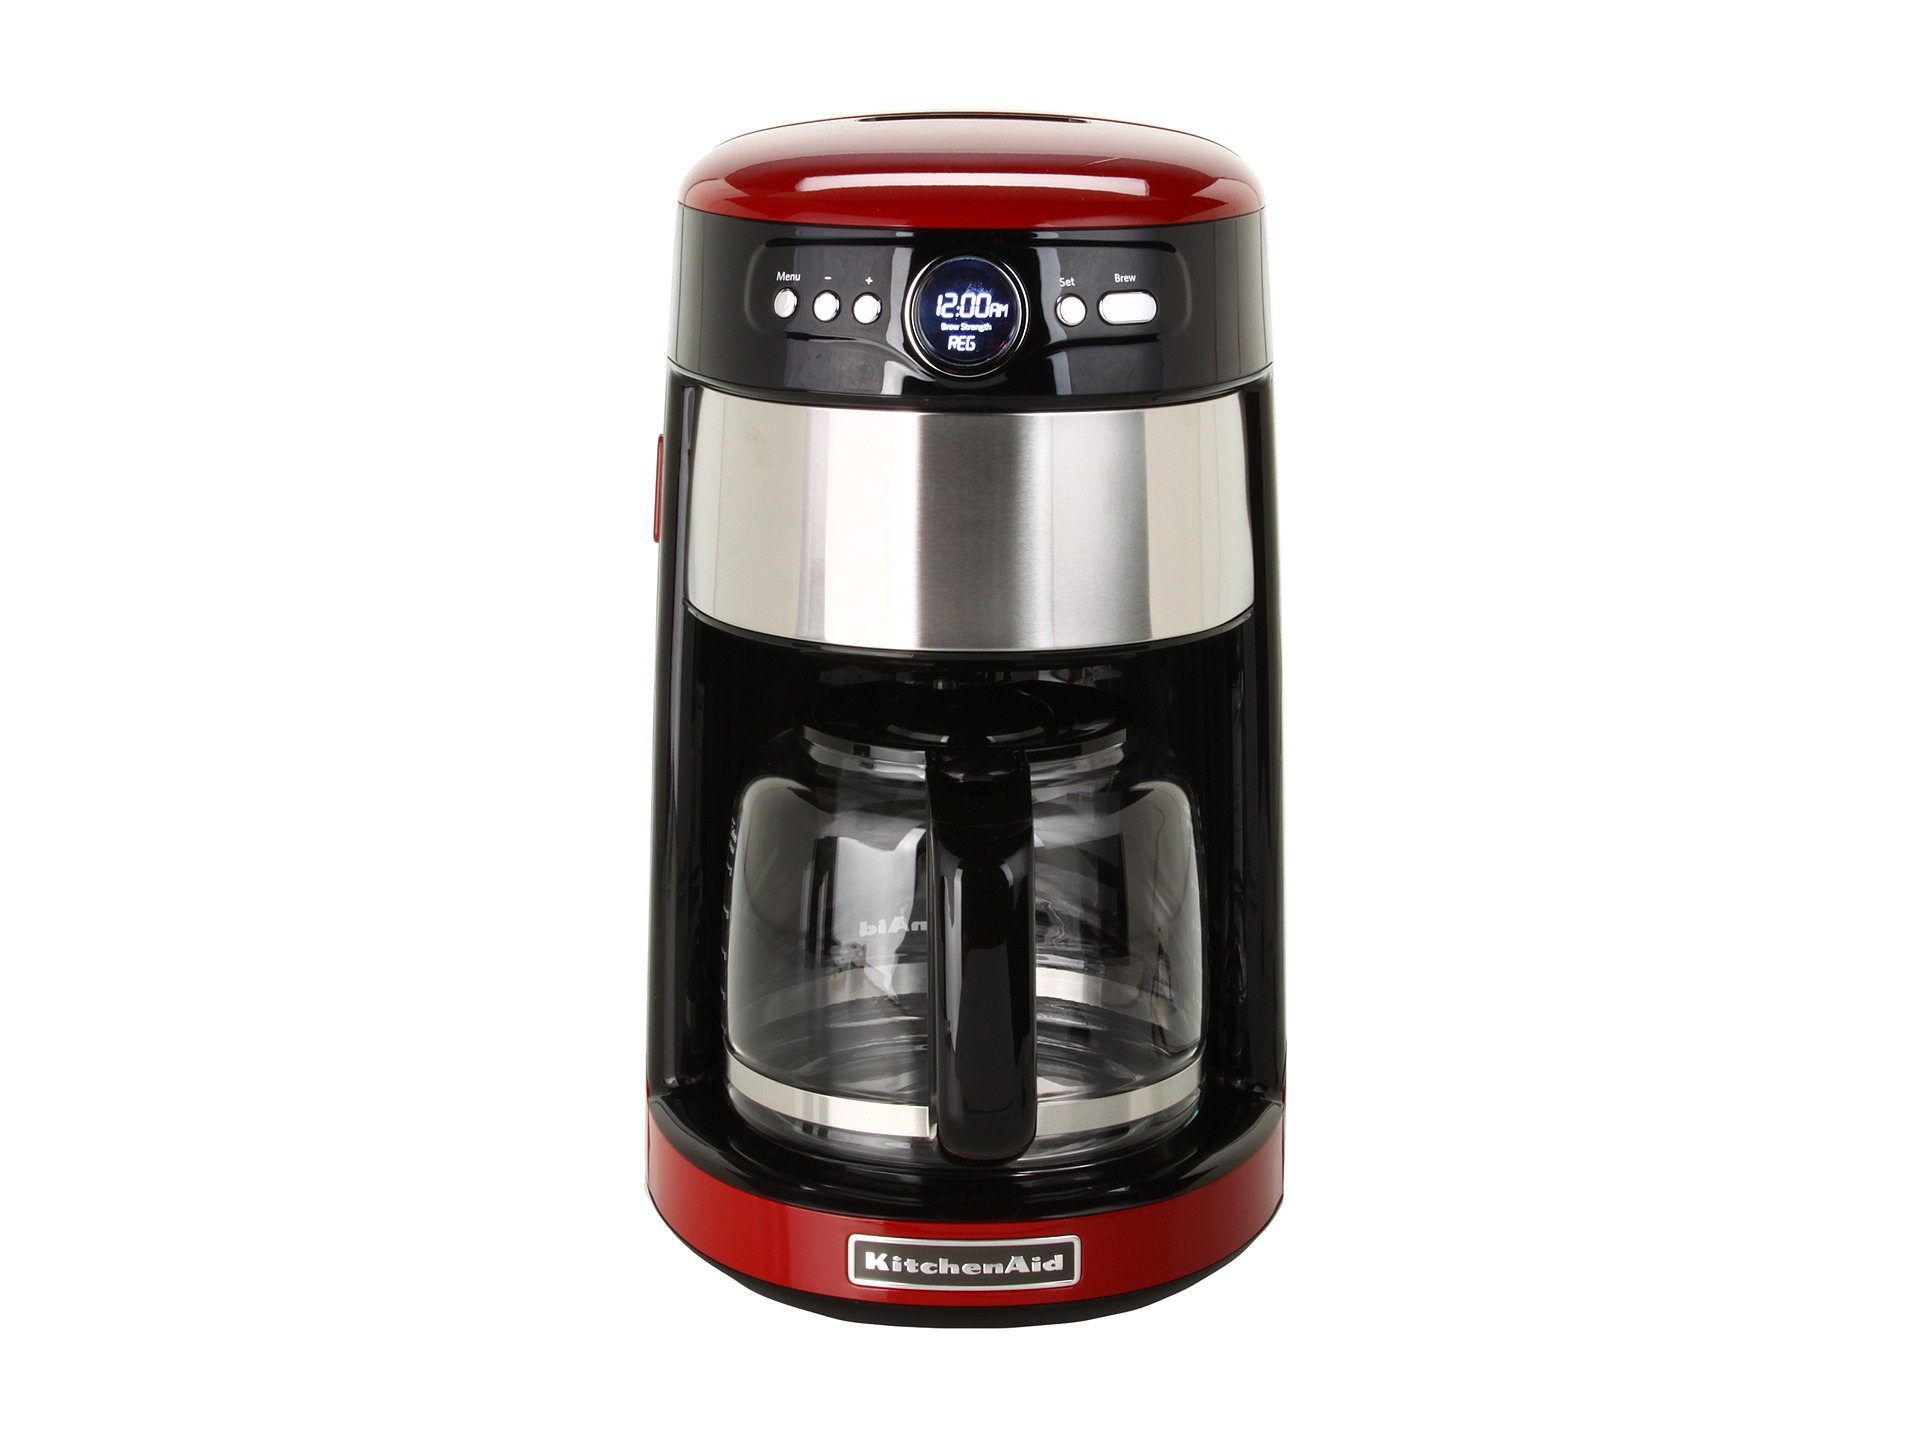 Kitchenaid Coffee Maker Manual Kcm5340b0 - Kitchen Design